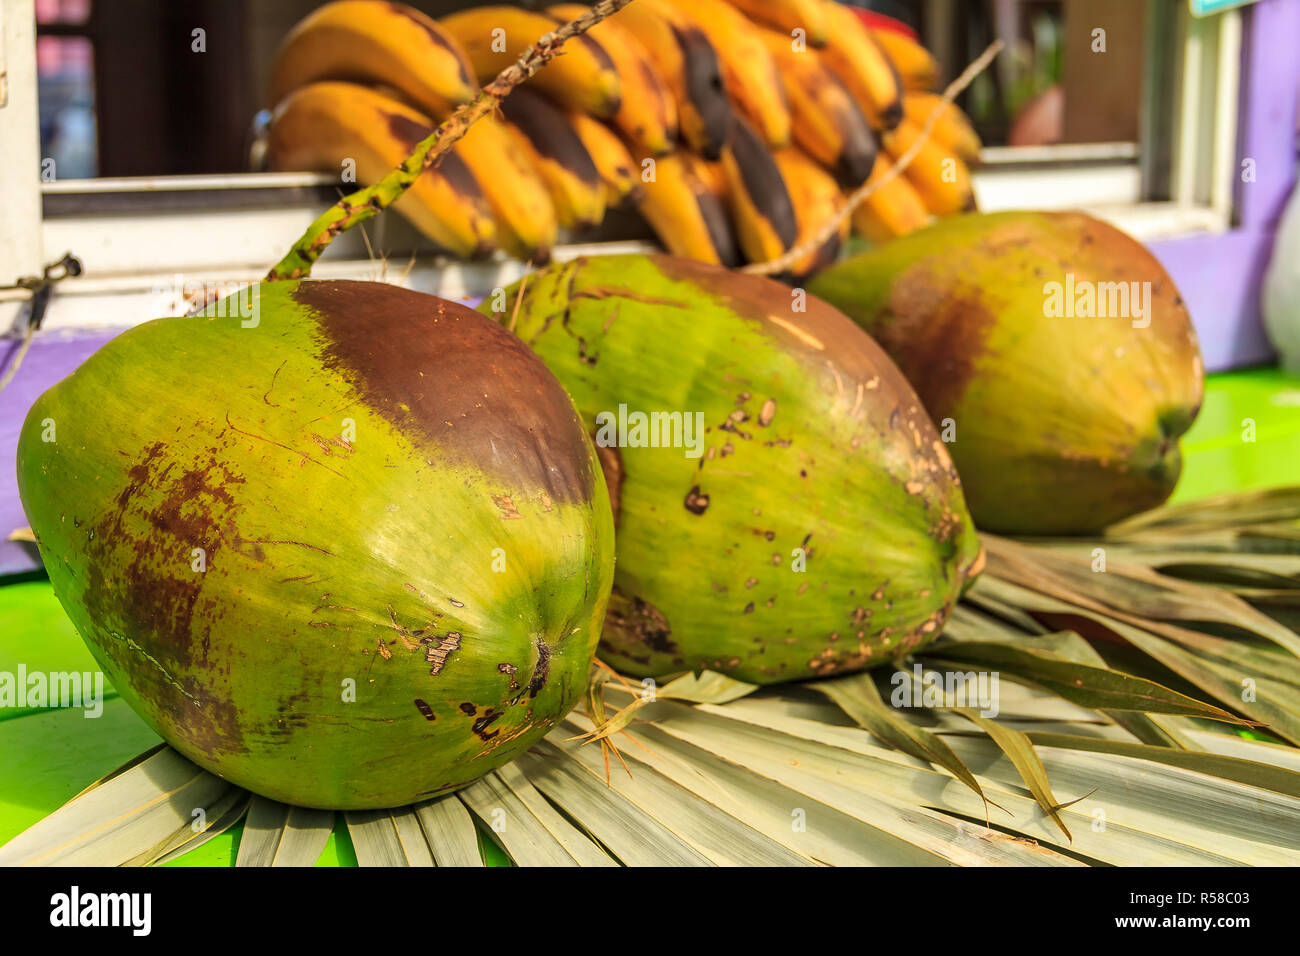 3 Fresh Green Ripe Coconuts Ready To Be Cracked Open For